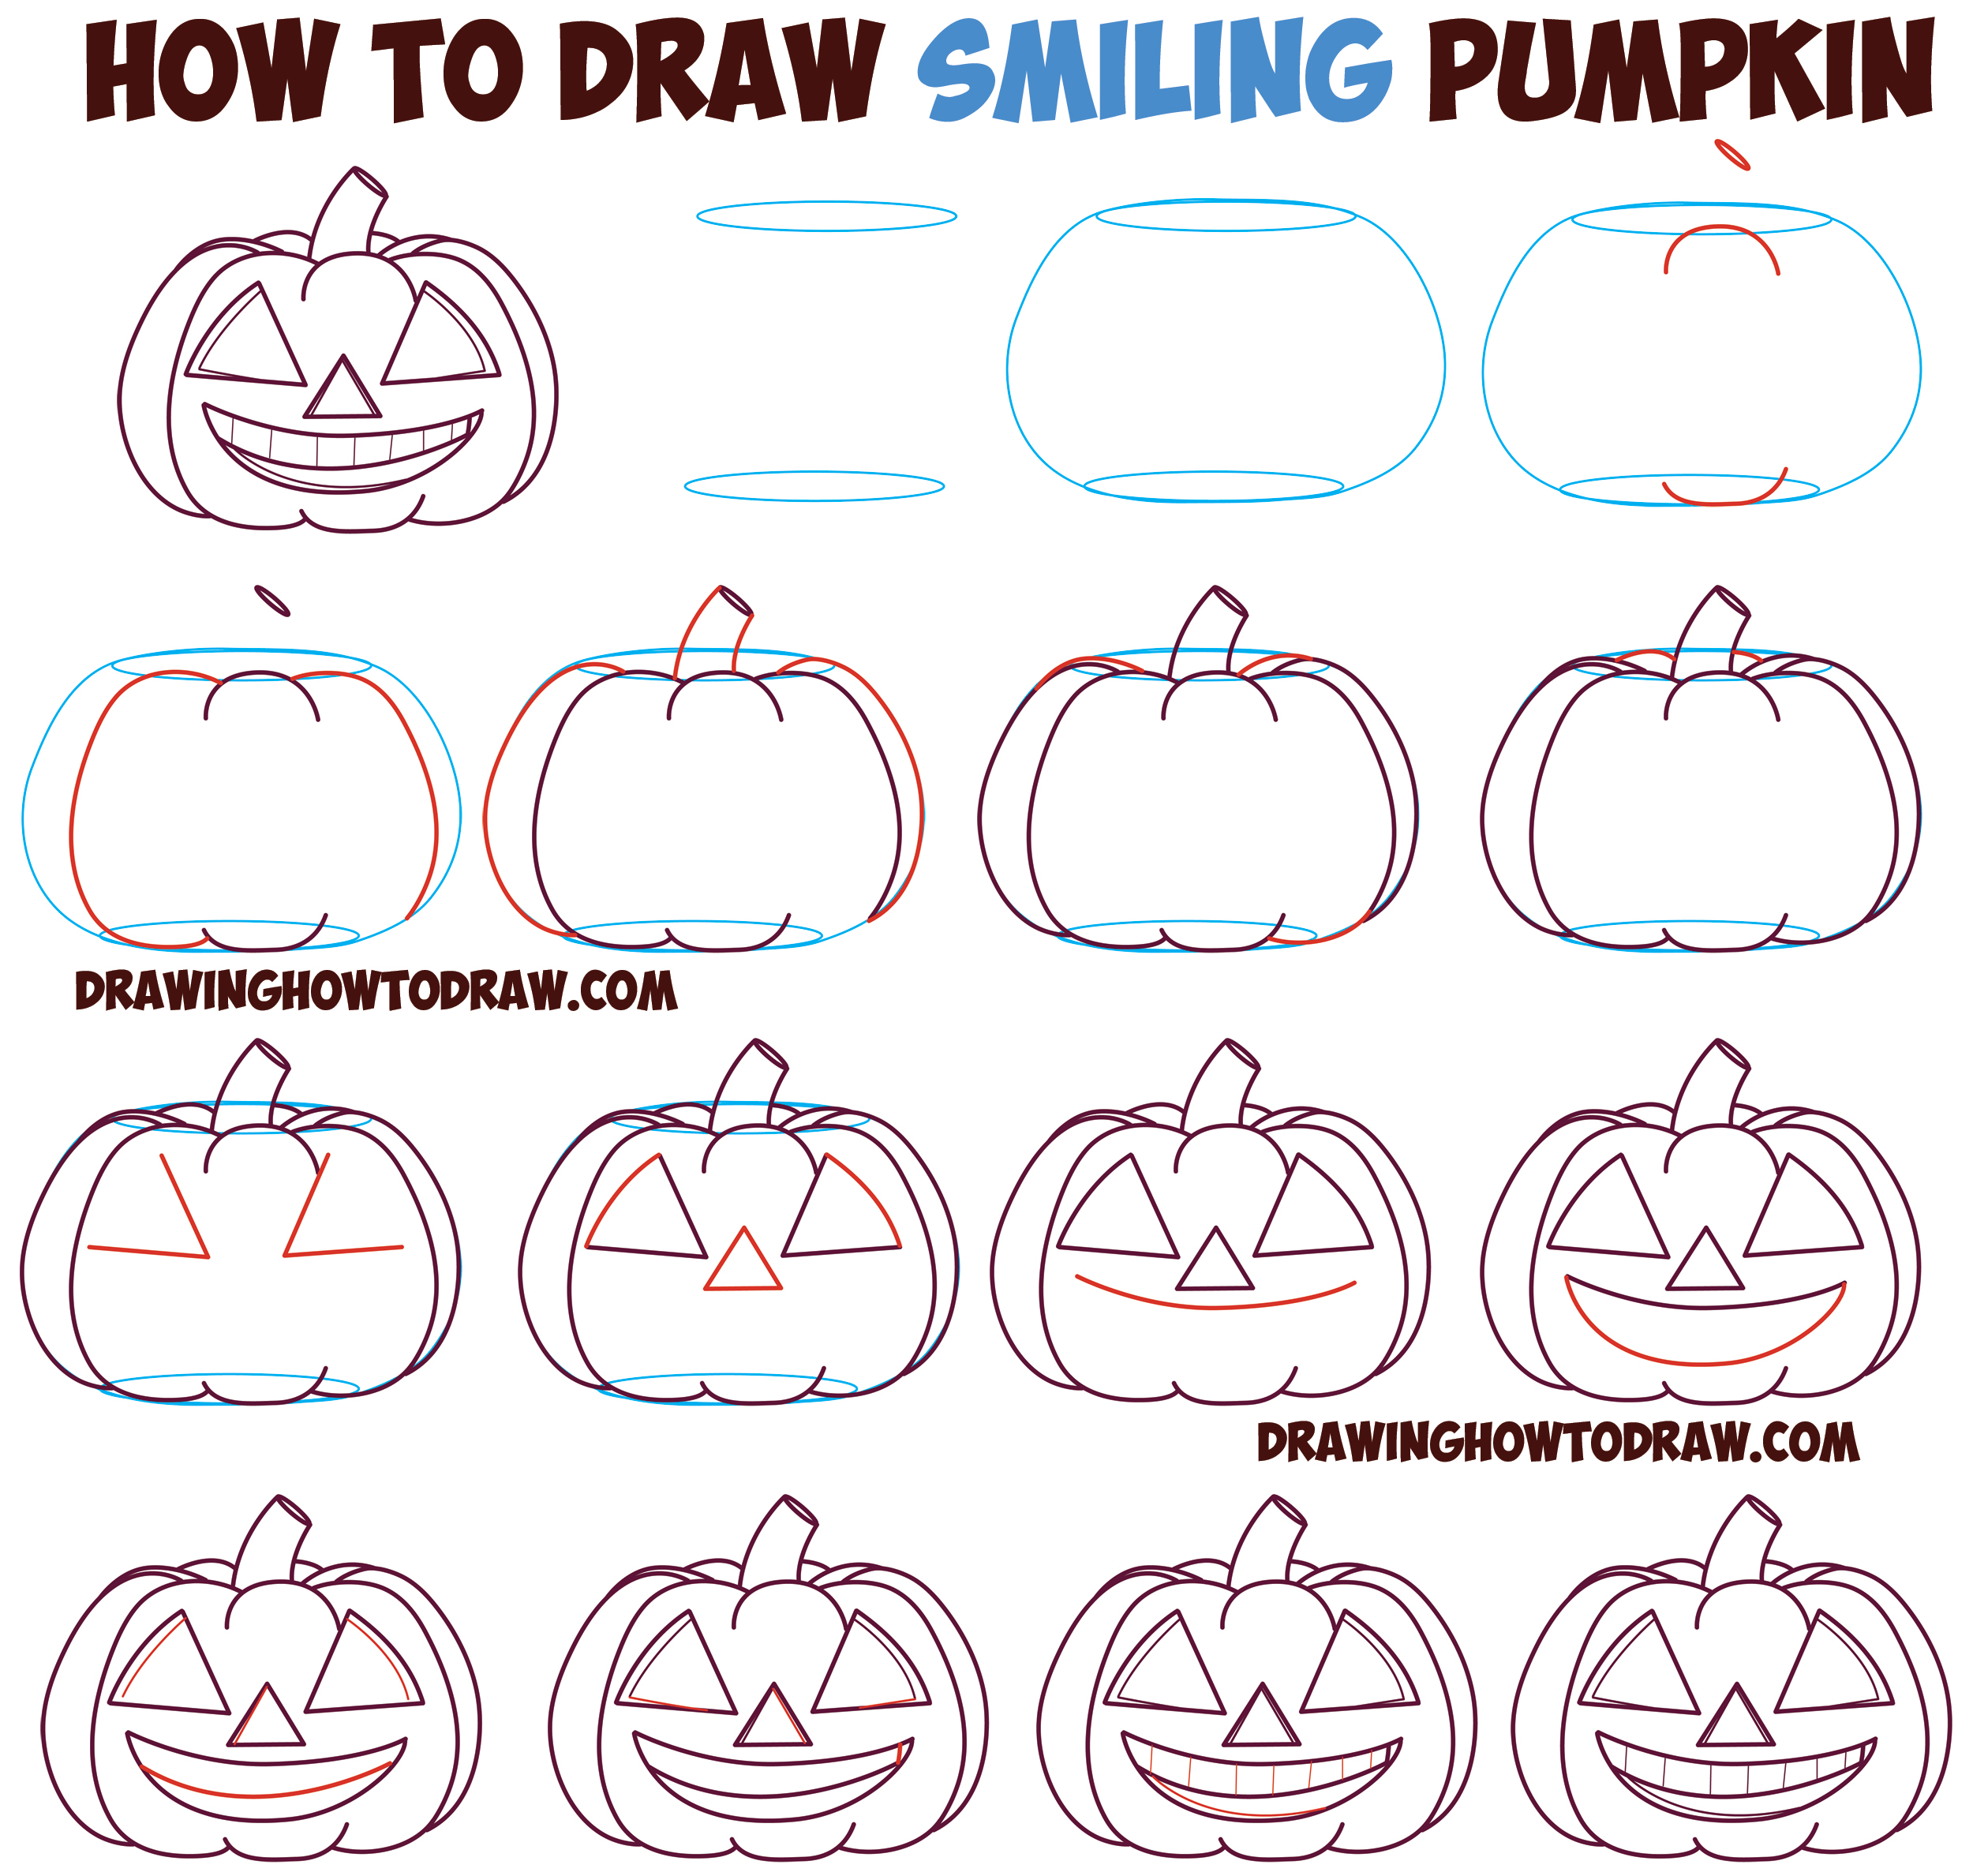 How to Draw Cartoon Pumpkin / Jack O'Lantern : Happy, Grinning with Full Mouth of Teeth